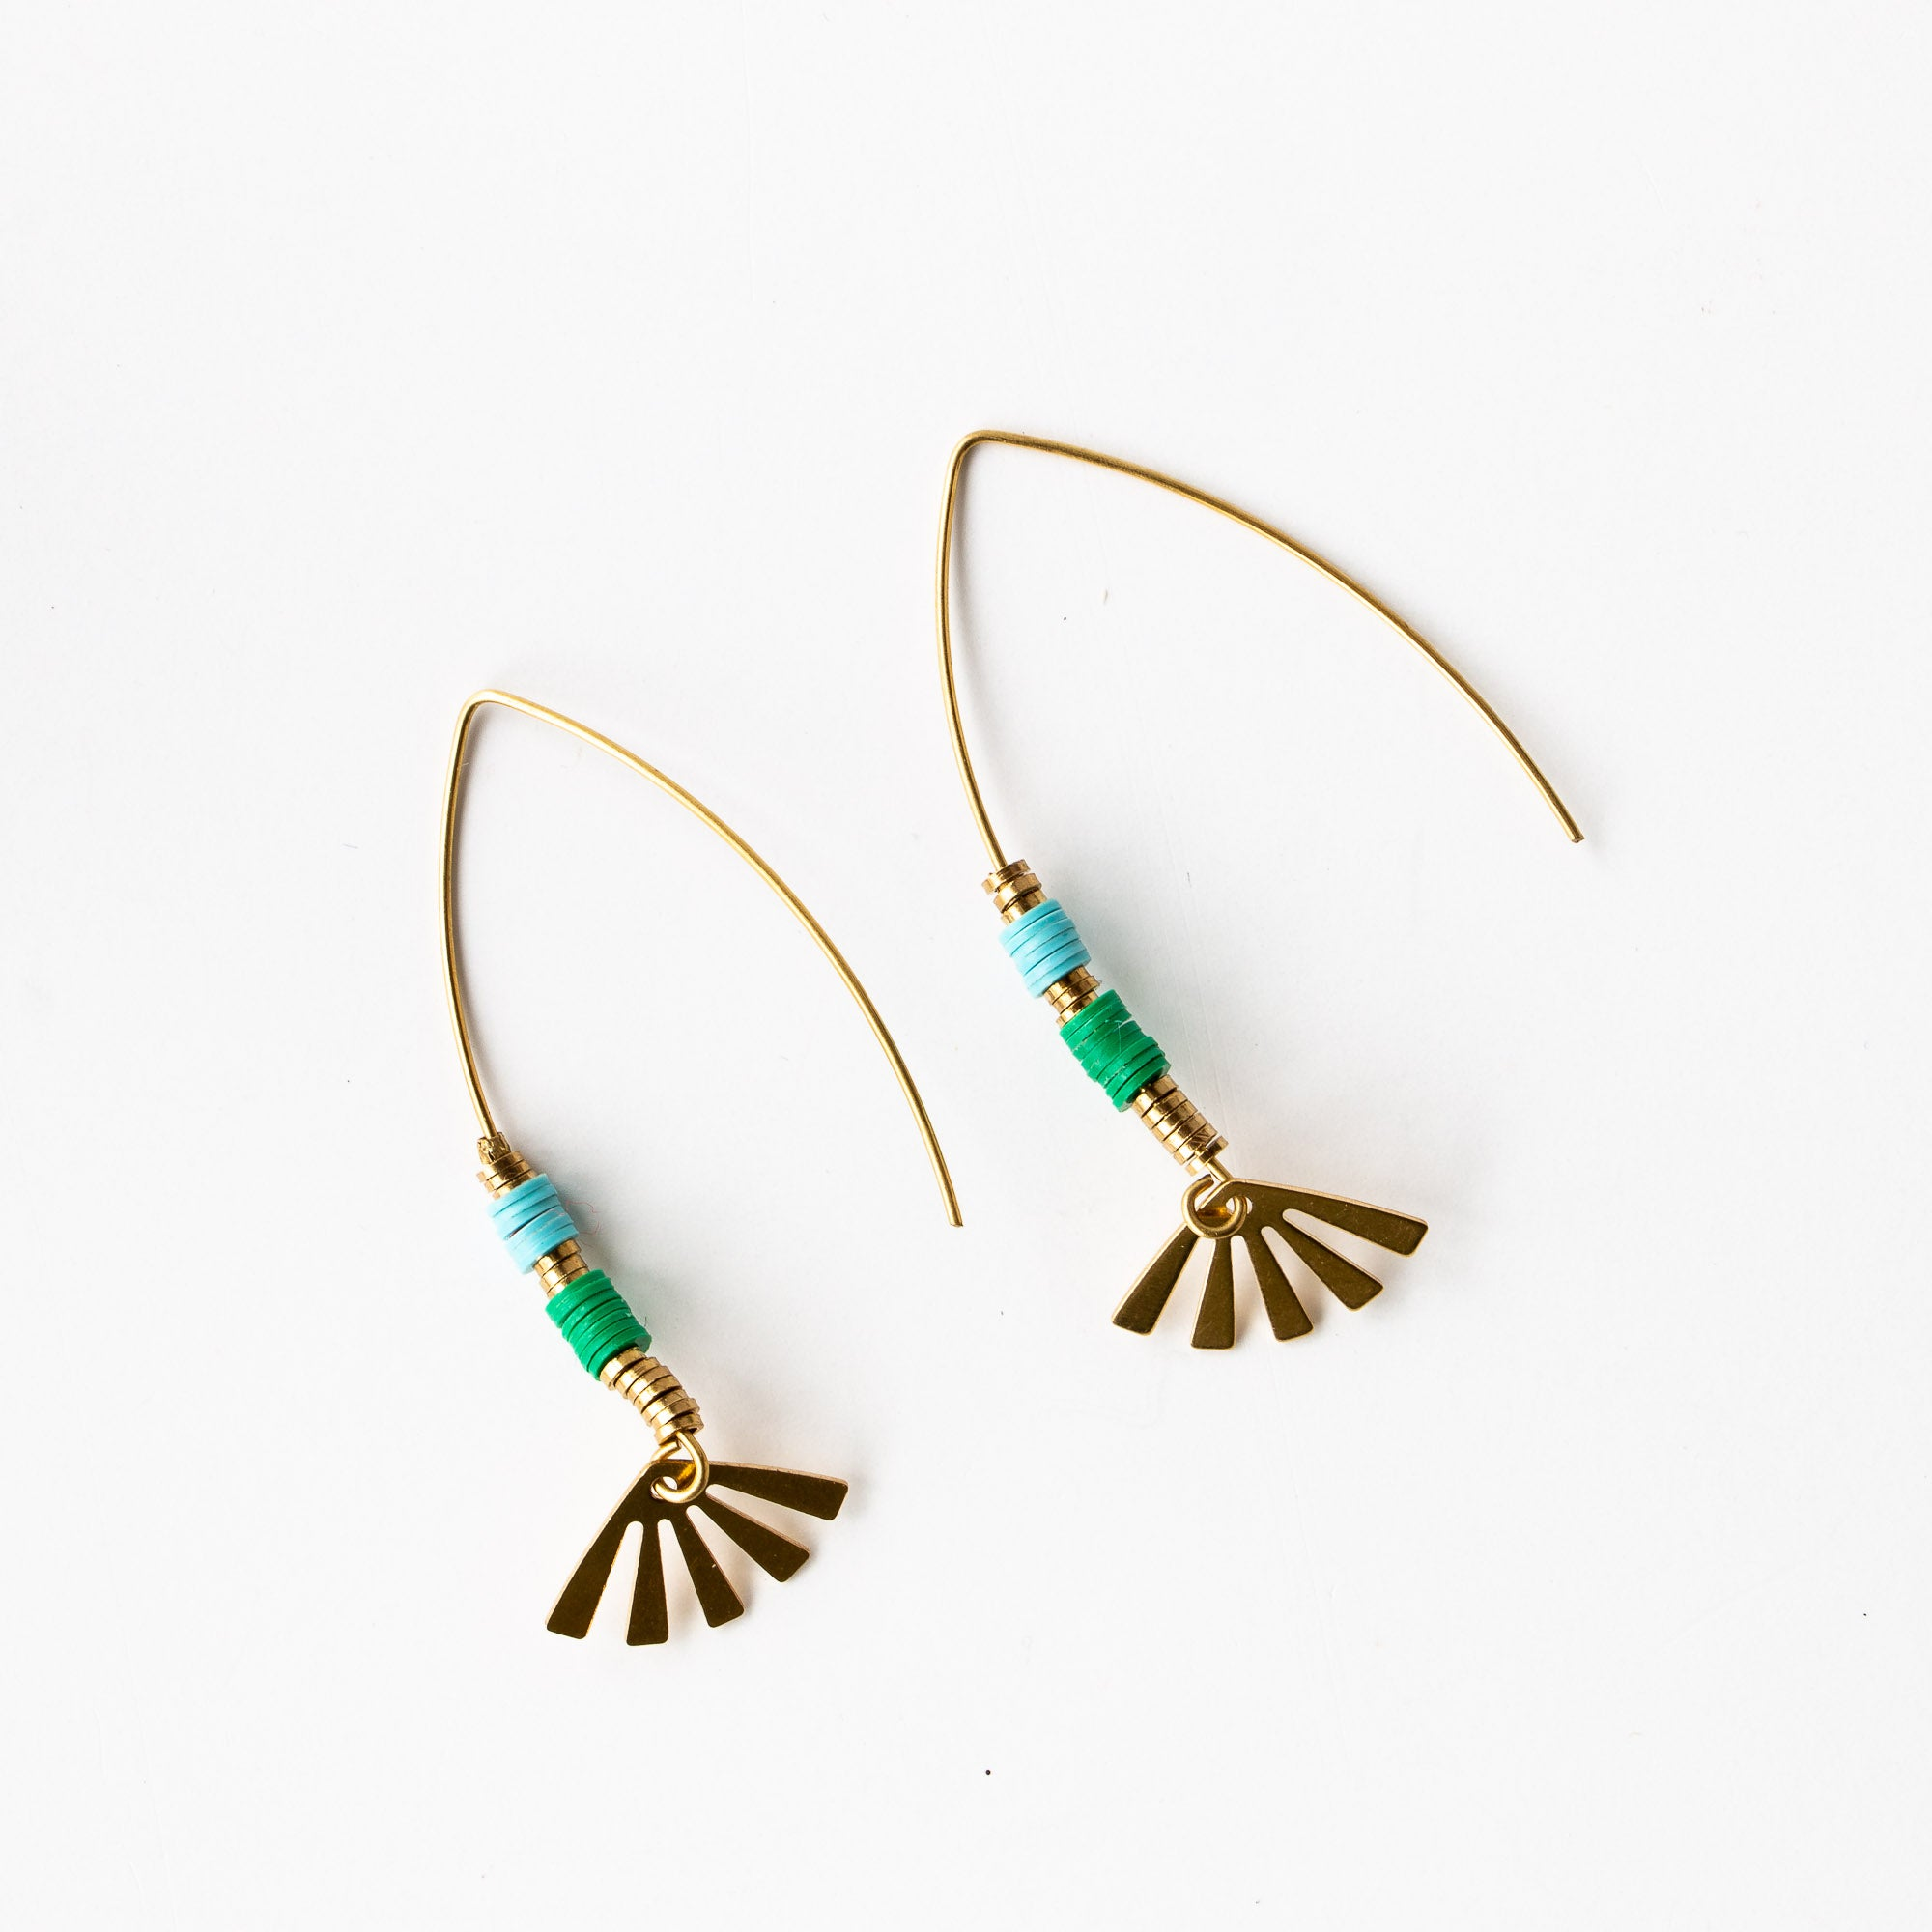 Andria Earrings - Handcrafted in Brass & African Vinyl - Sold by Chic & Basta